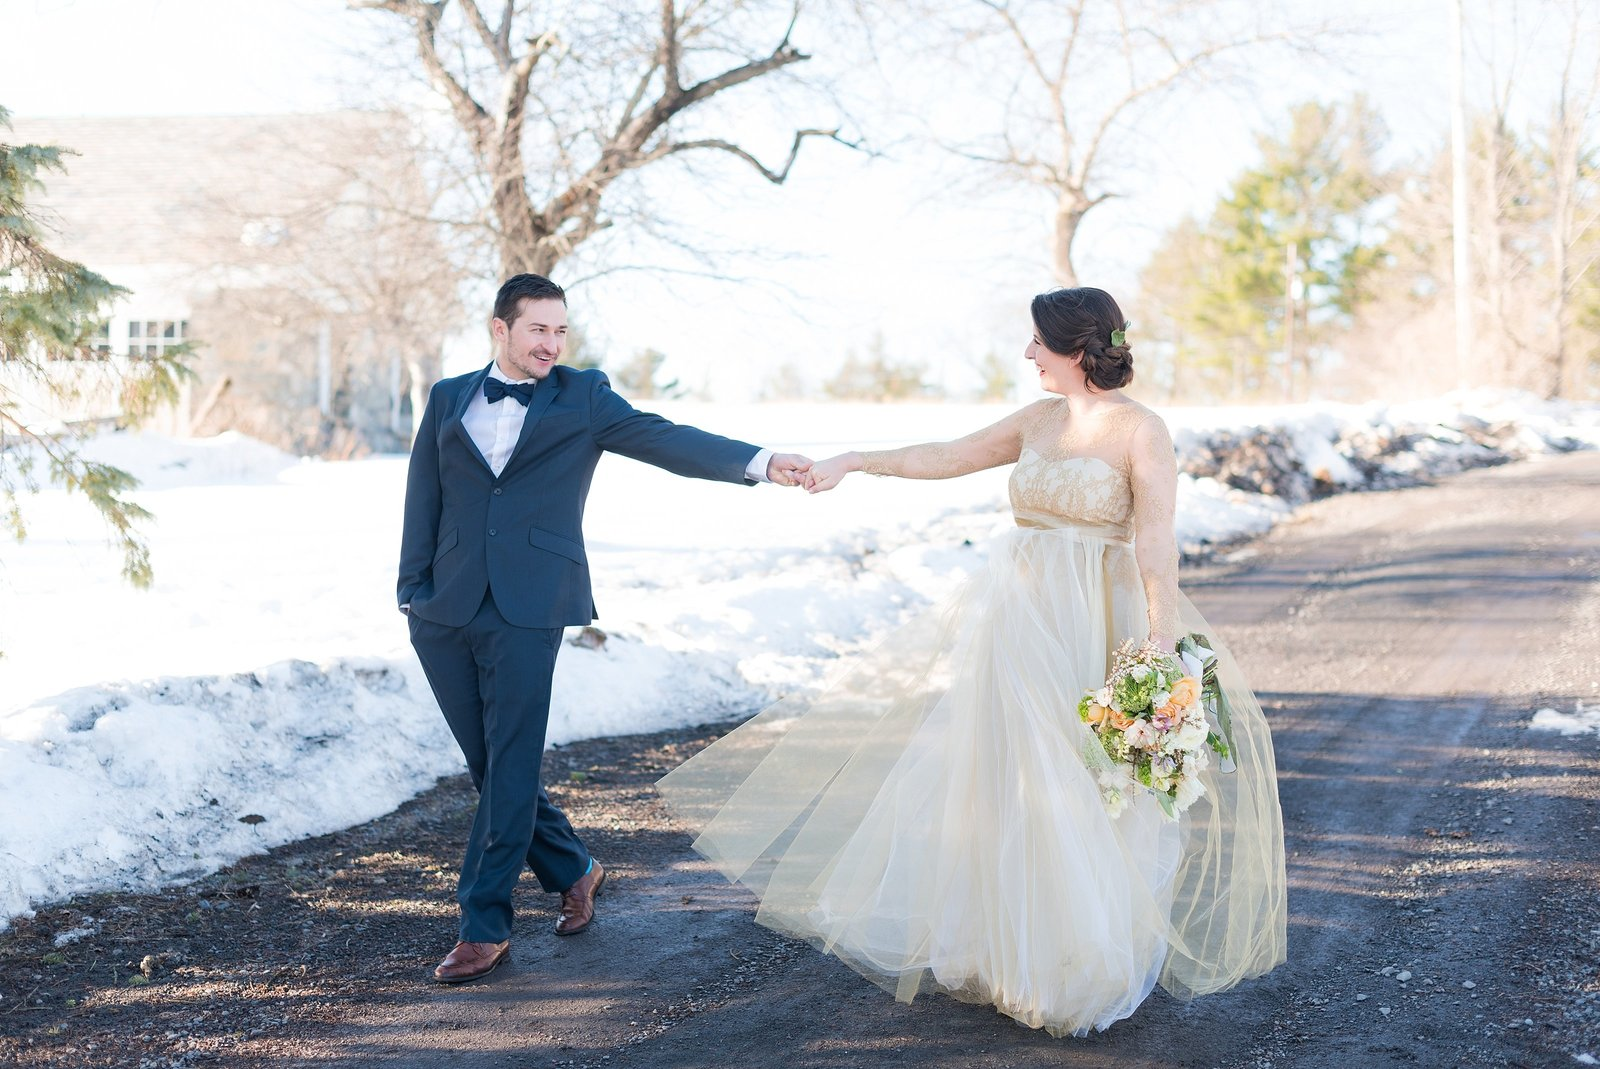 Bride and Groom Playfully Walking in the Snow Photo